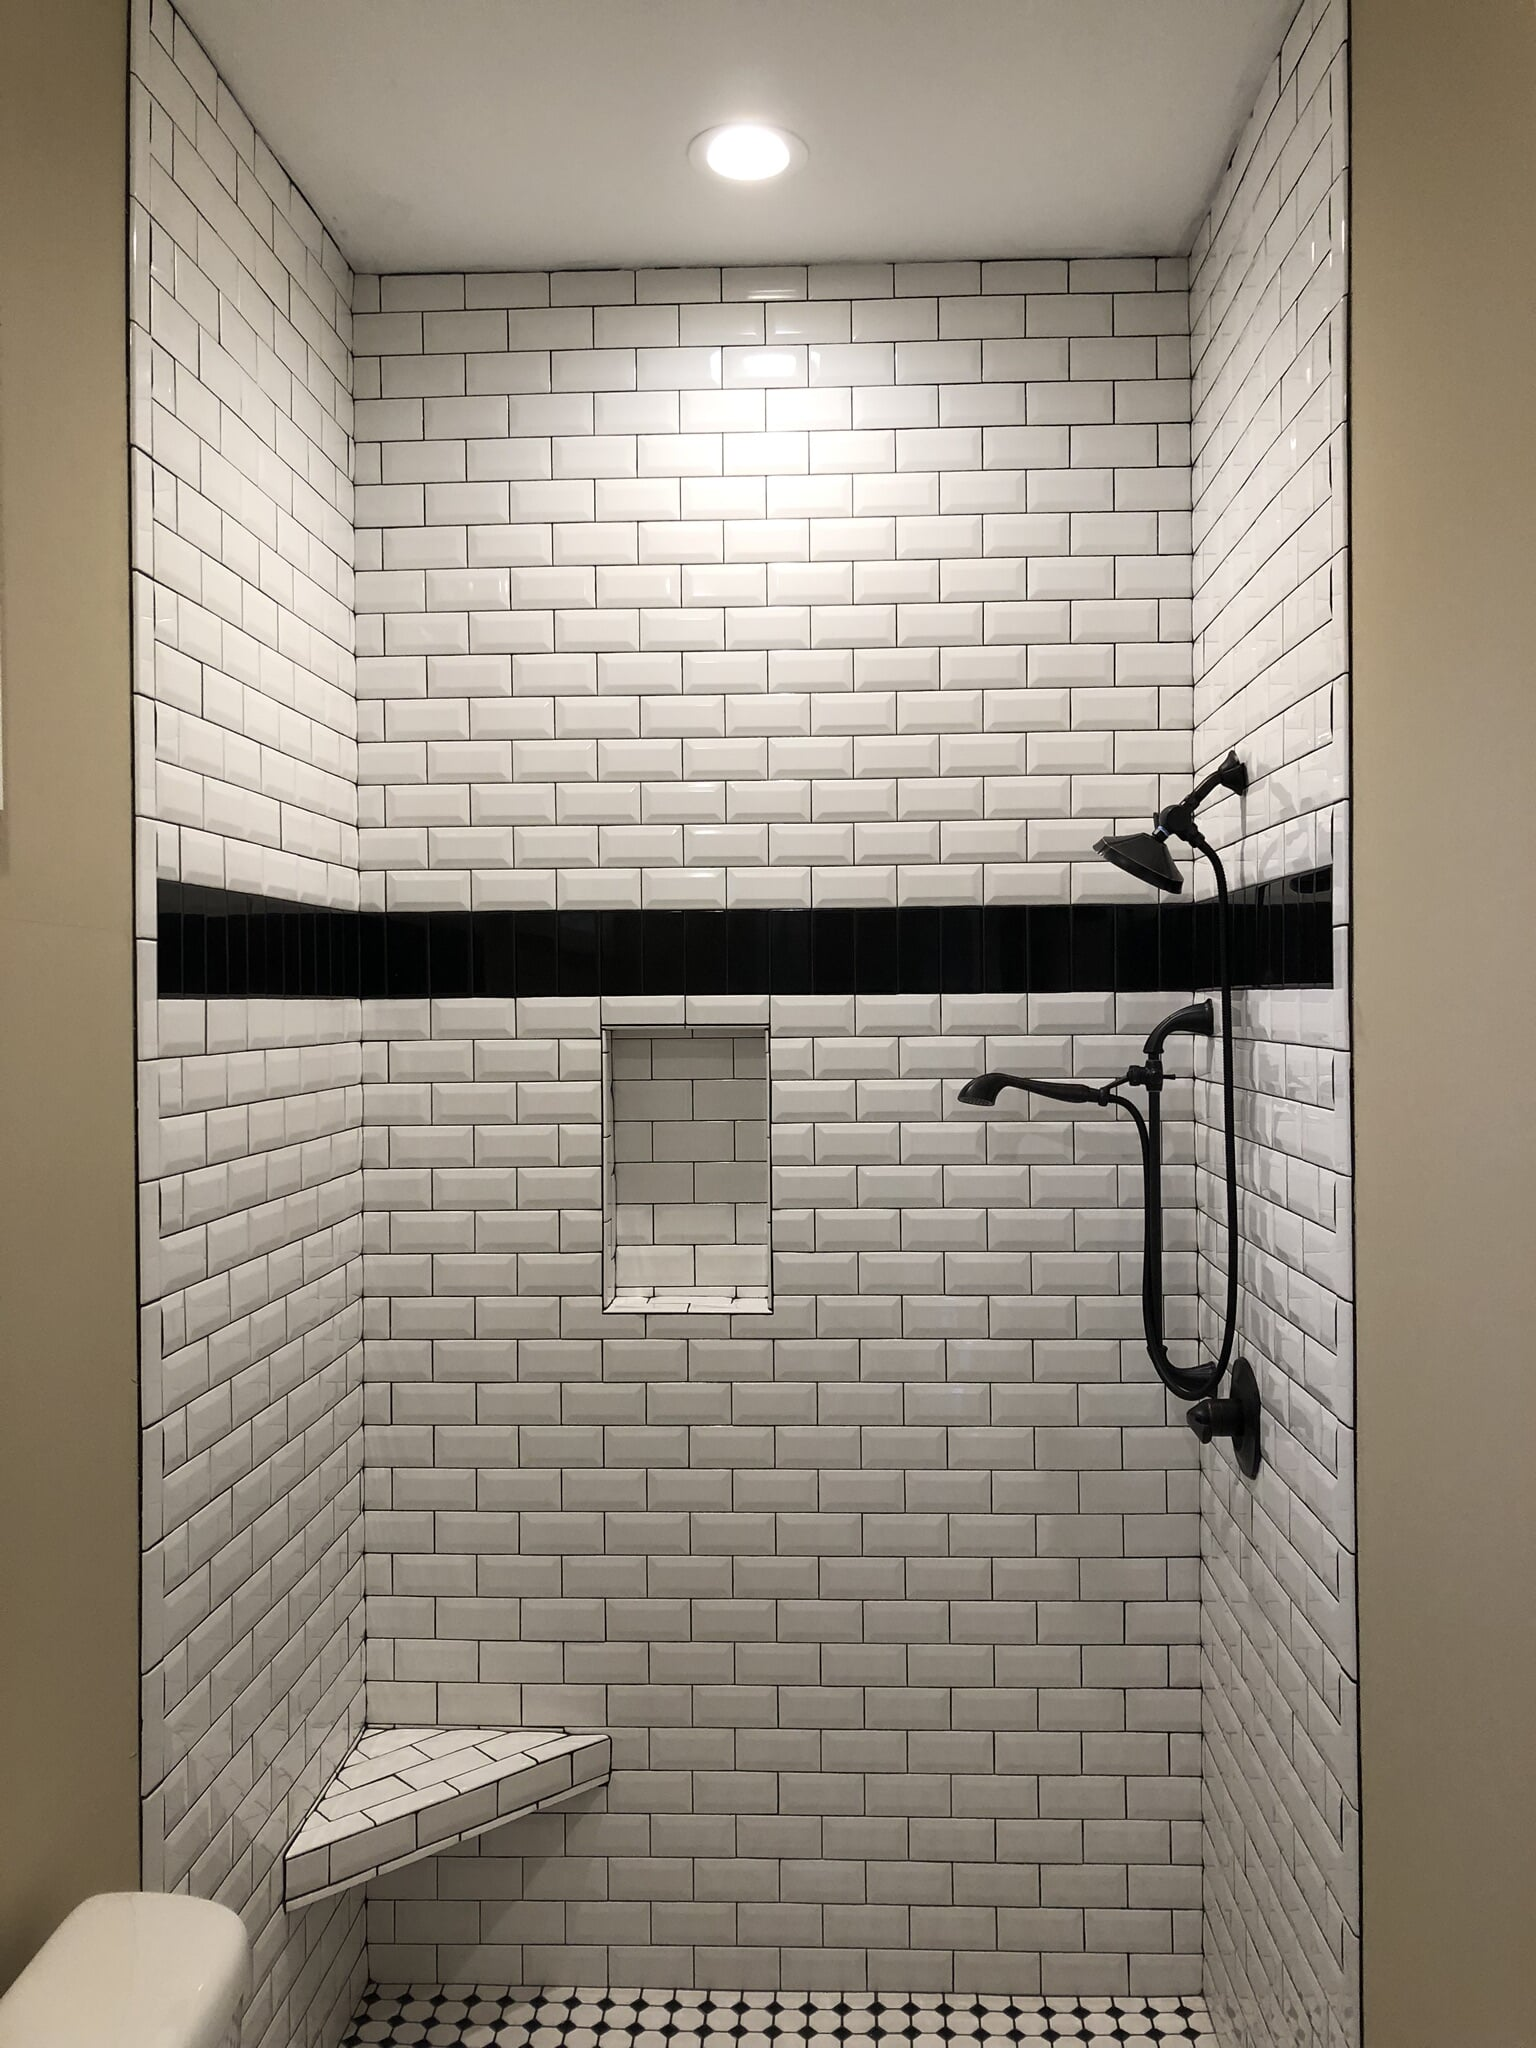 Subway tile shower installation in Fairhope, AL from G & J Tile & Floor Covering